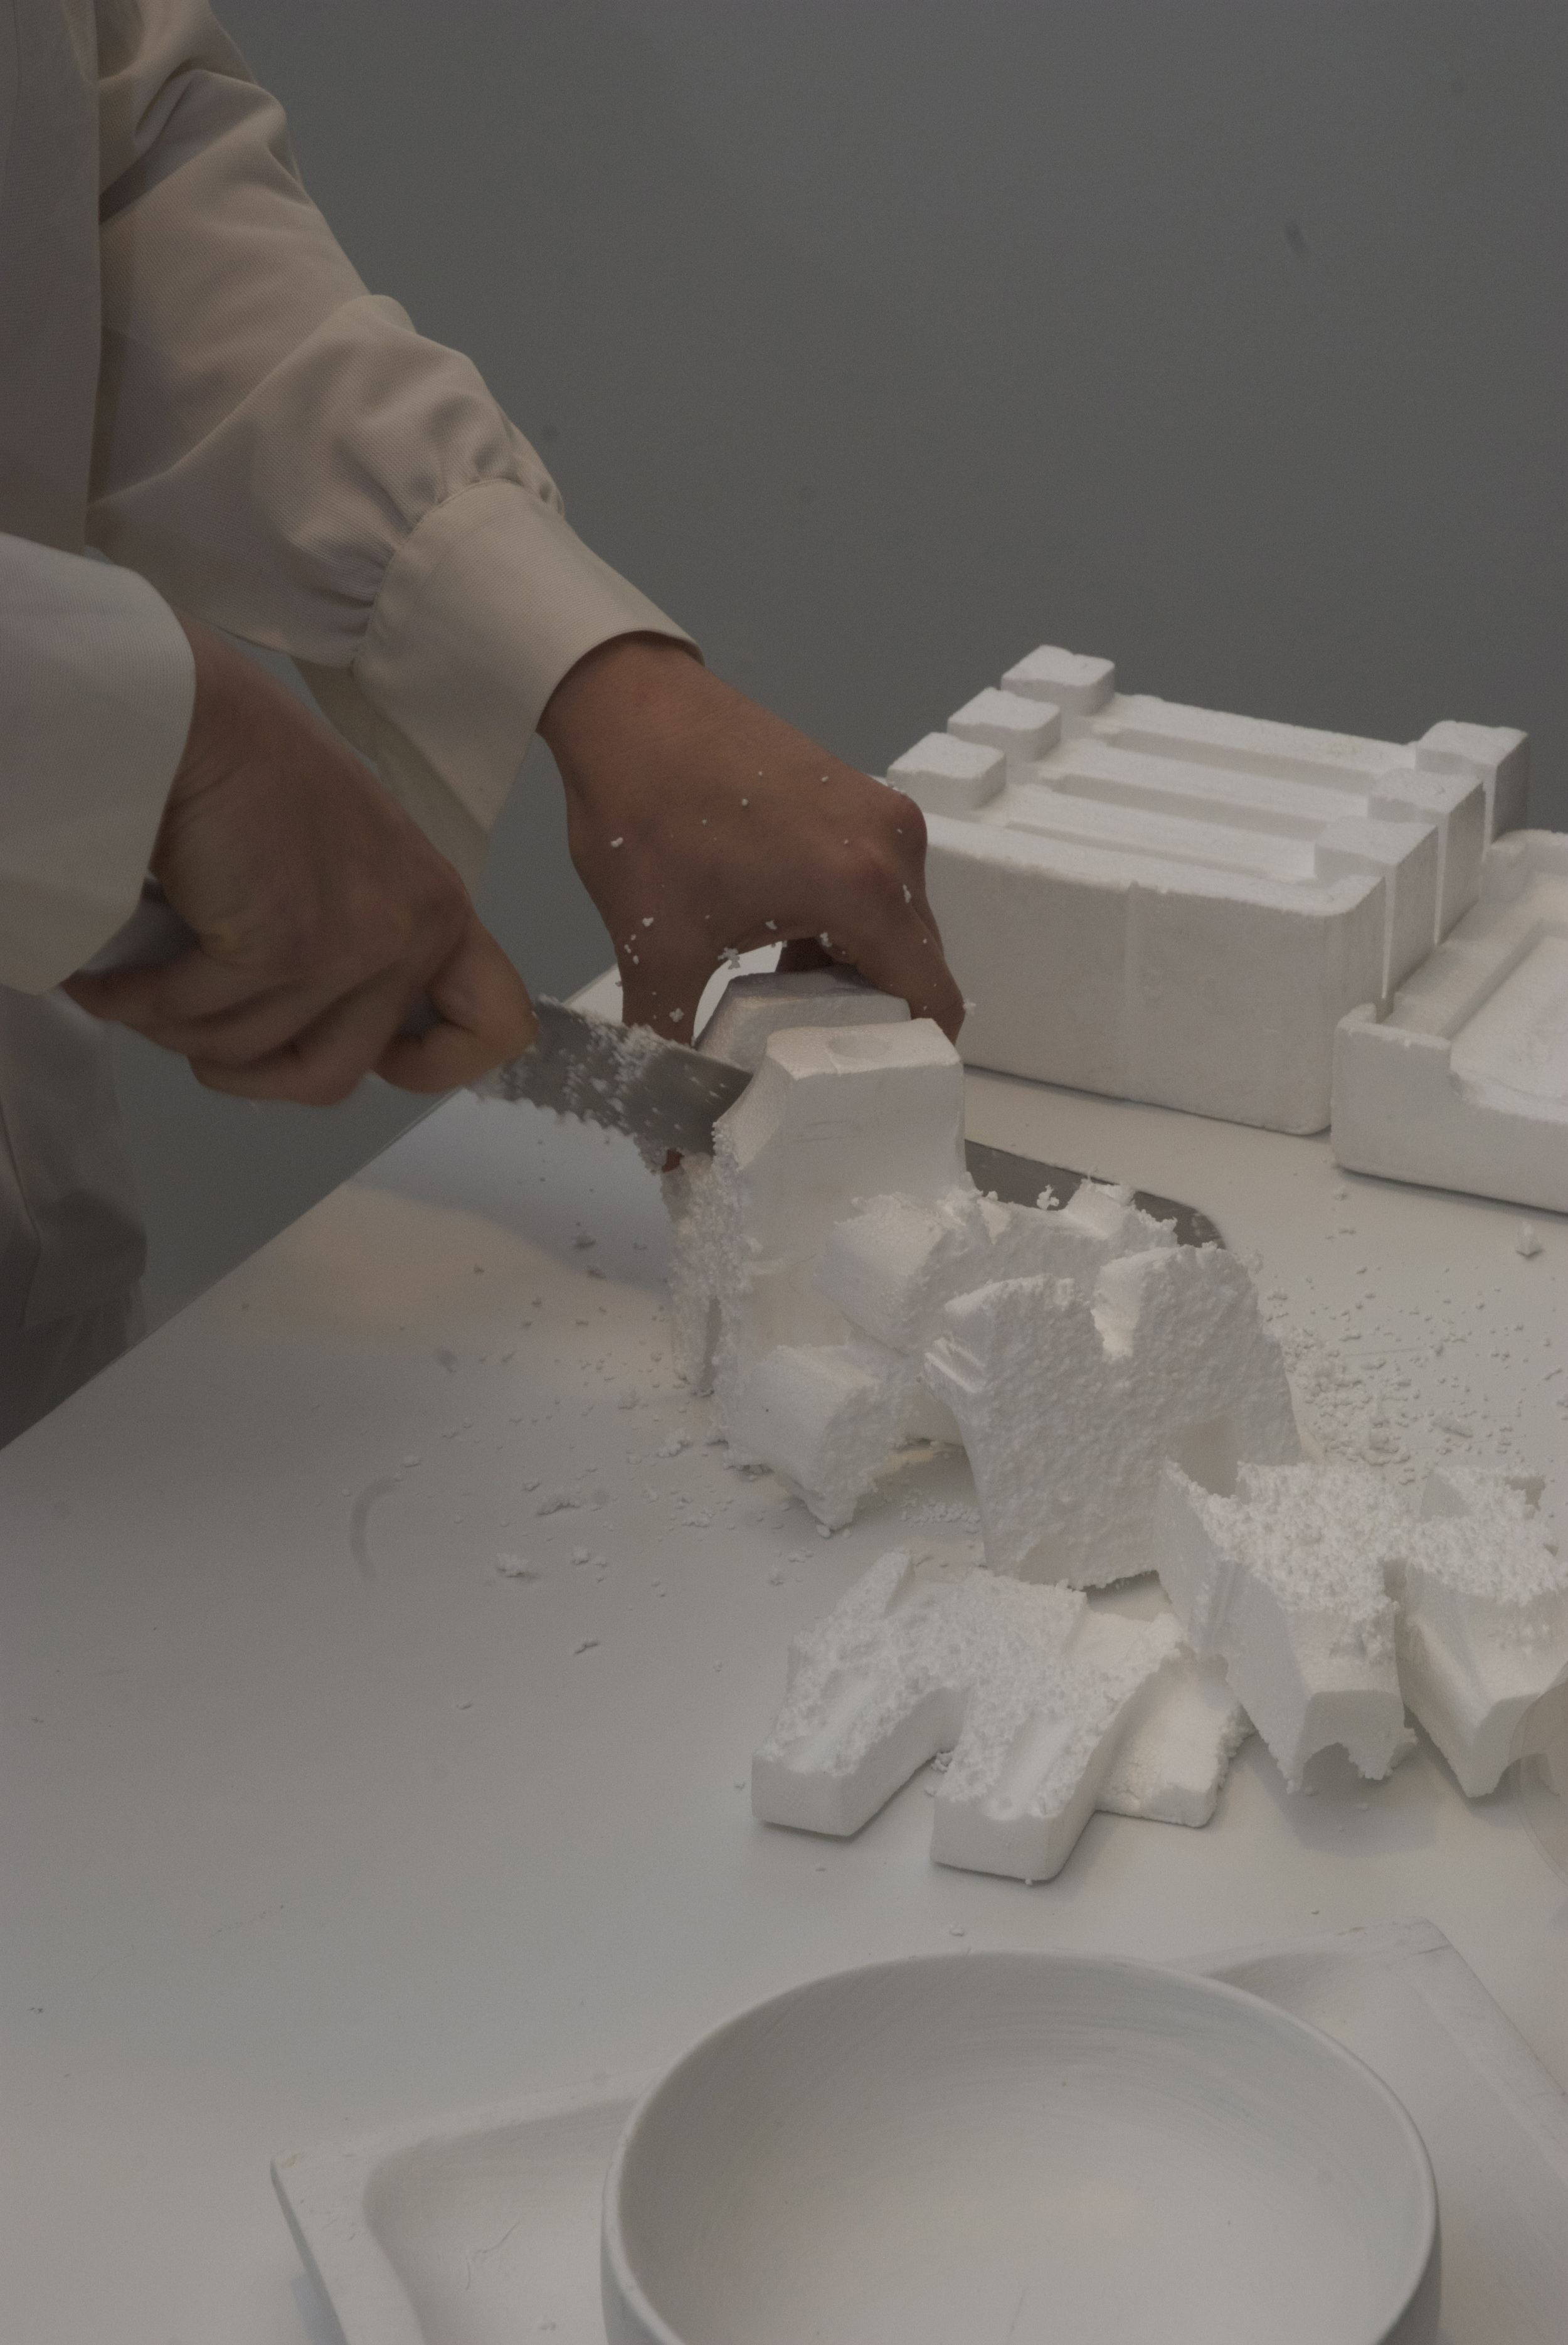 thesis_cuttingstyrofoam.jpg